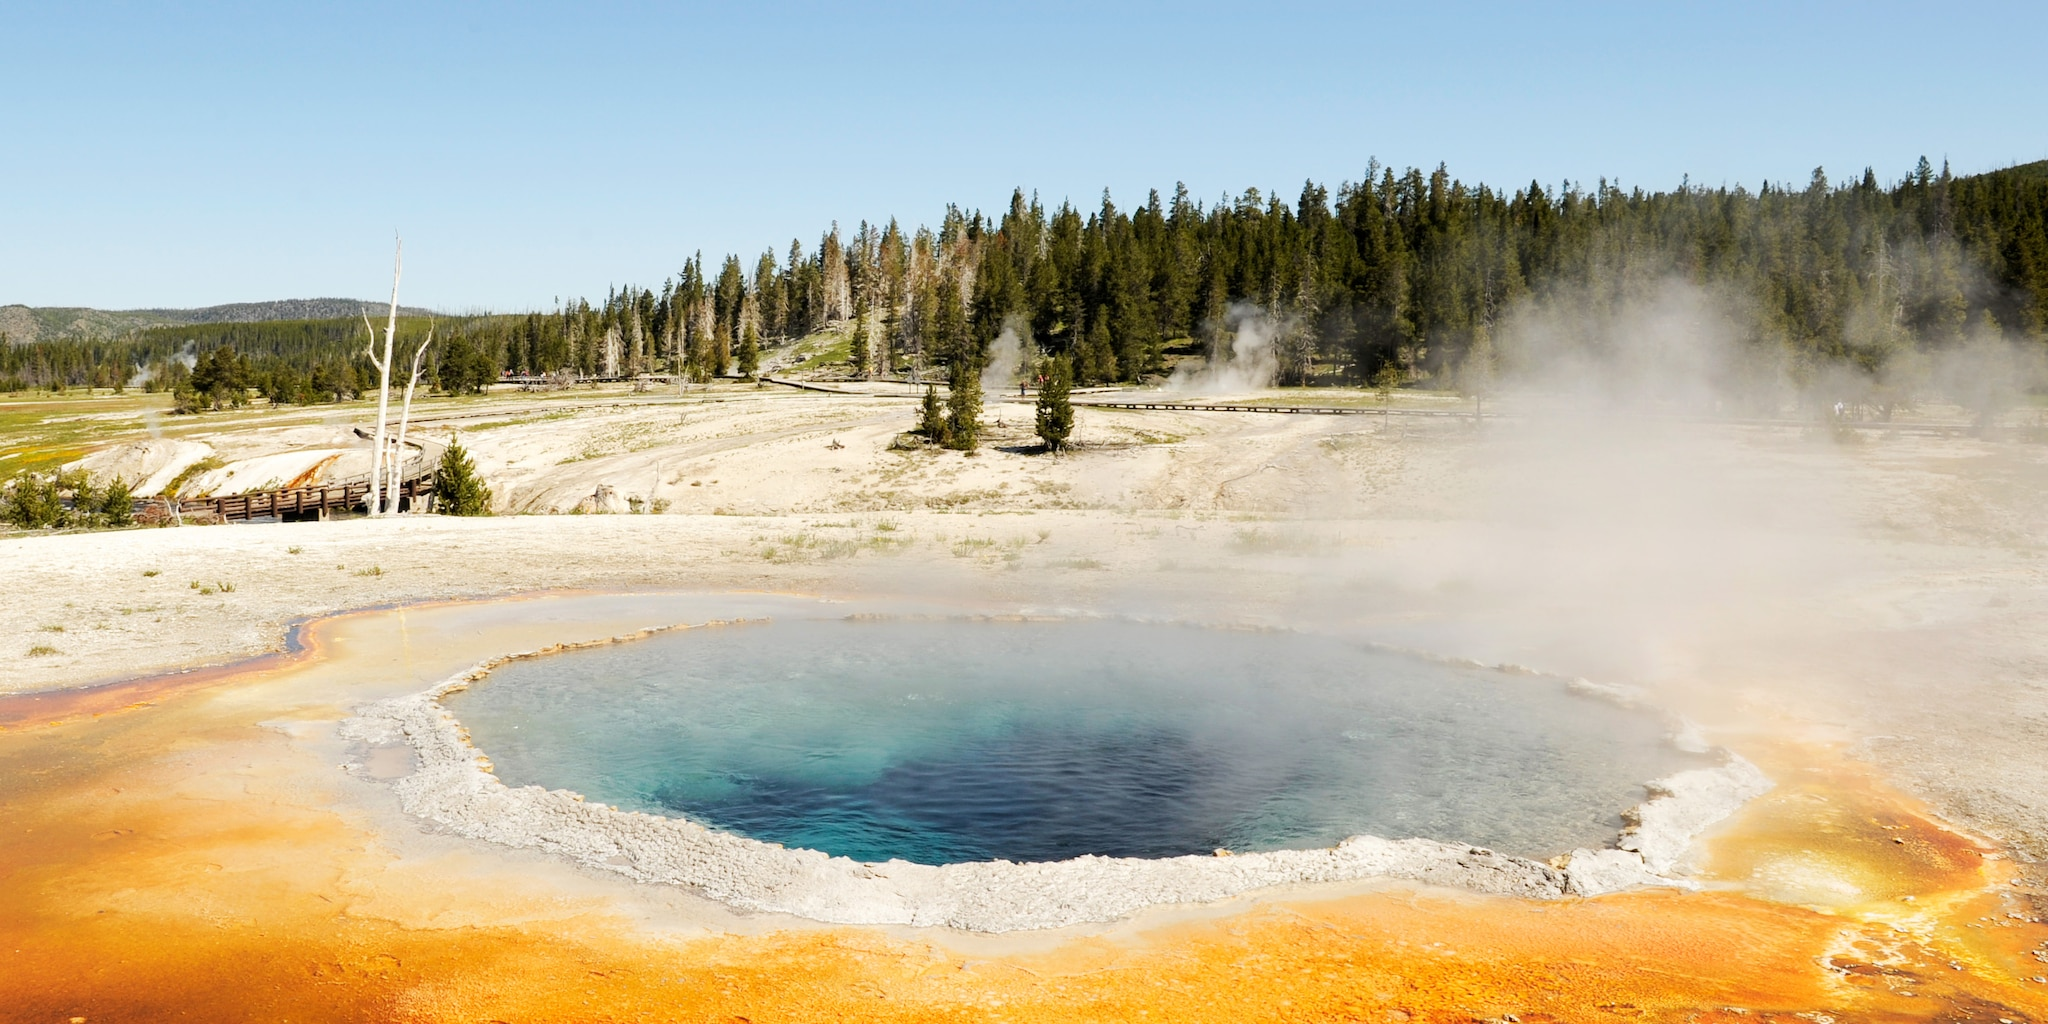 A steaming geyser with the Yellowstone forest in the background